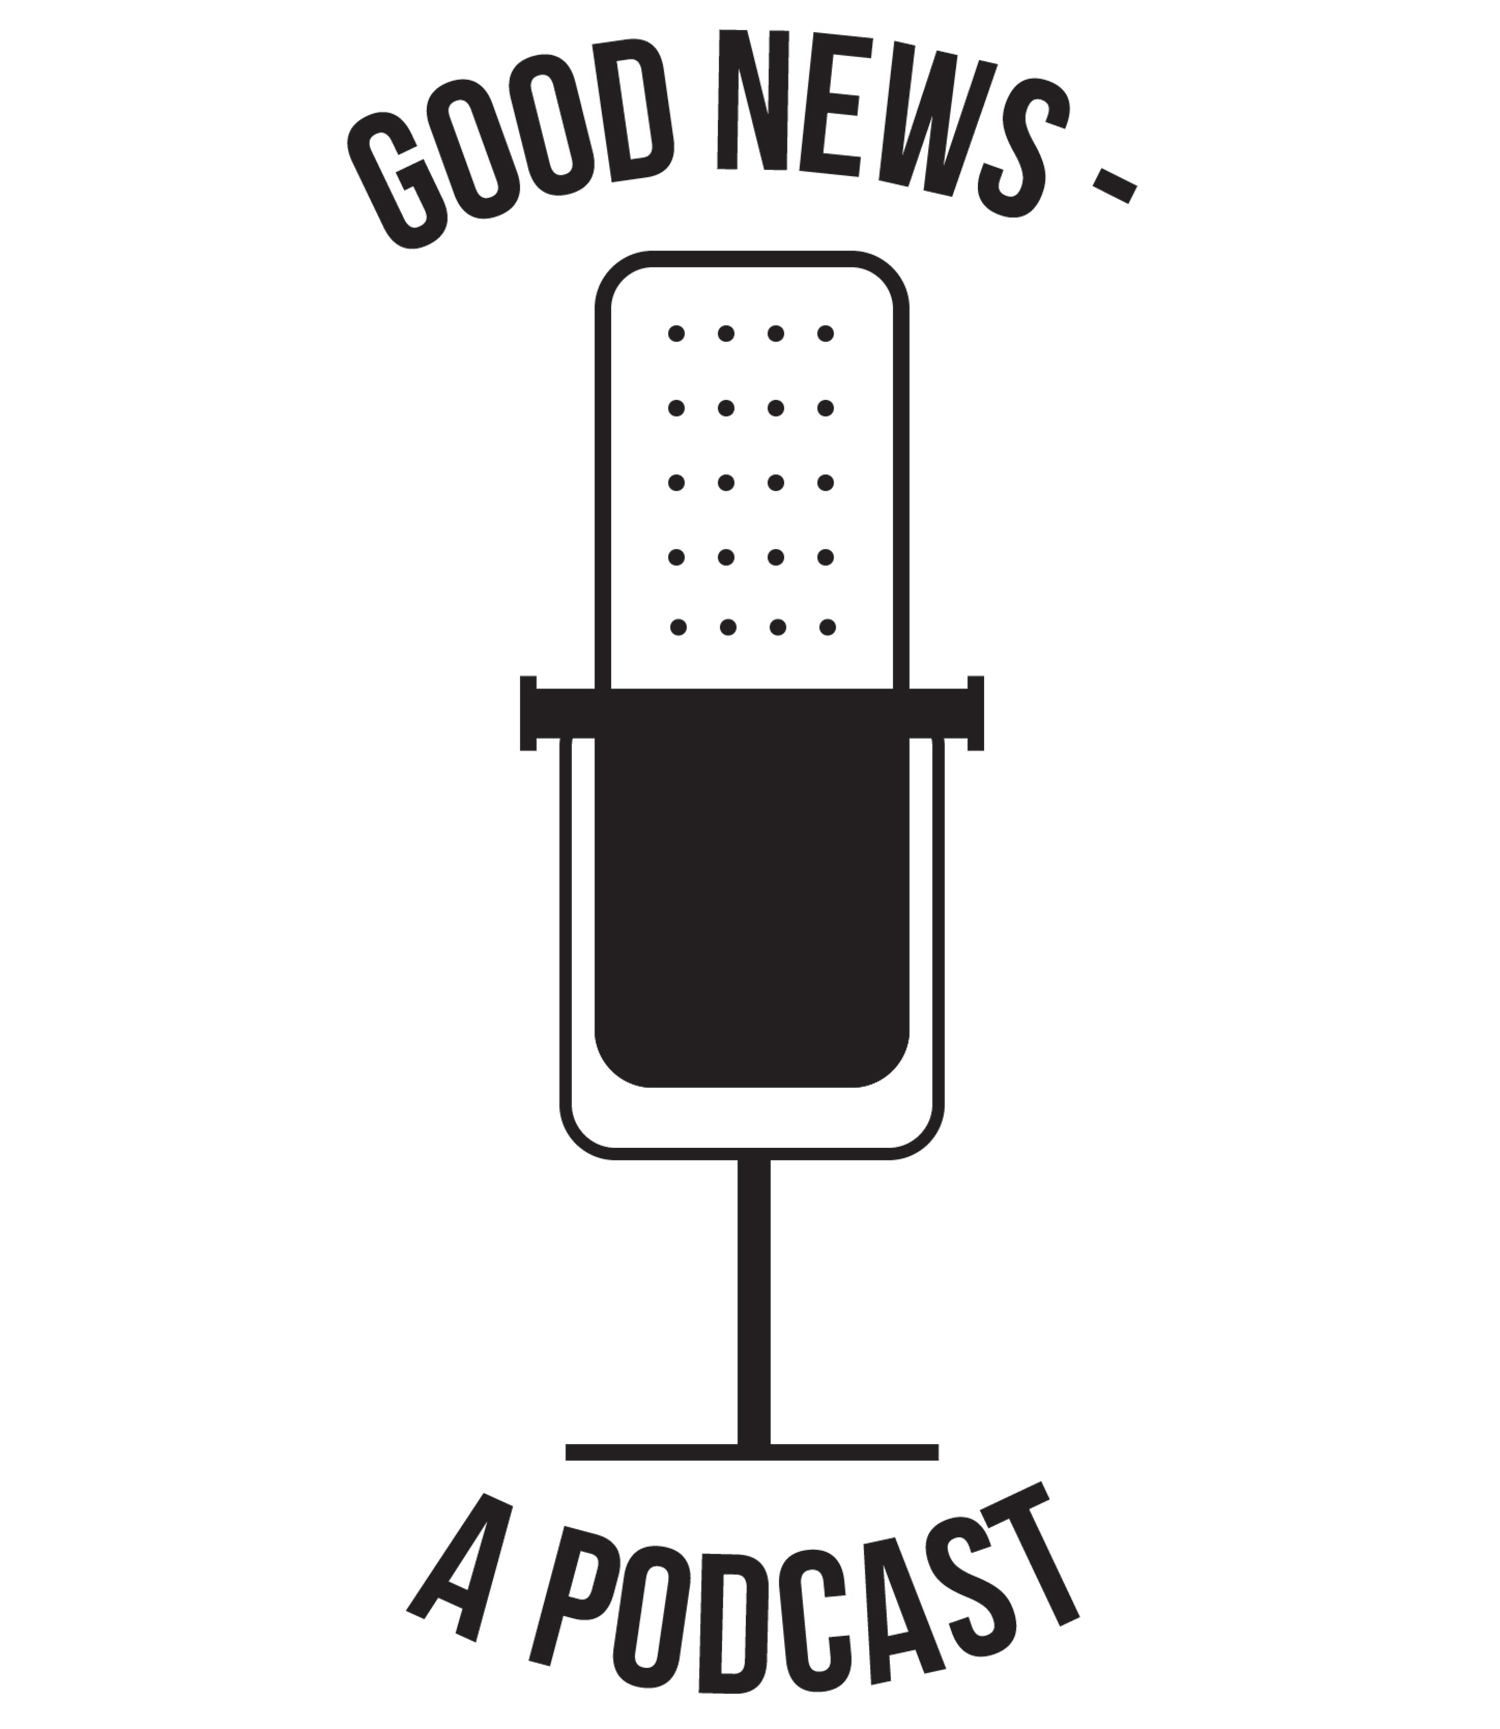 classic-logo-good.news-a.podcast